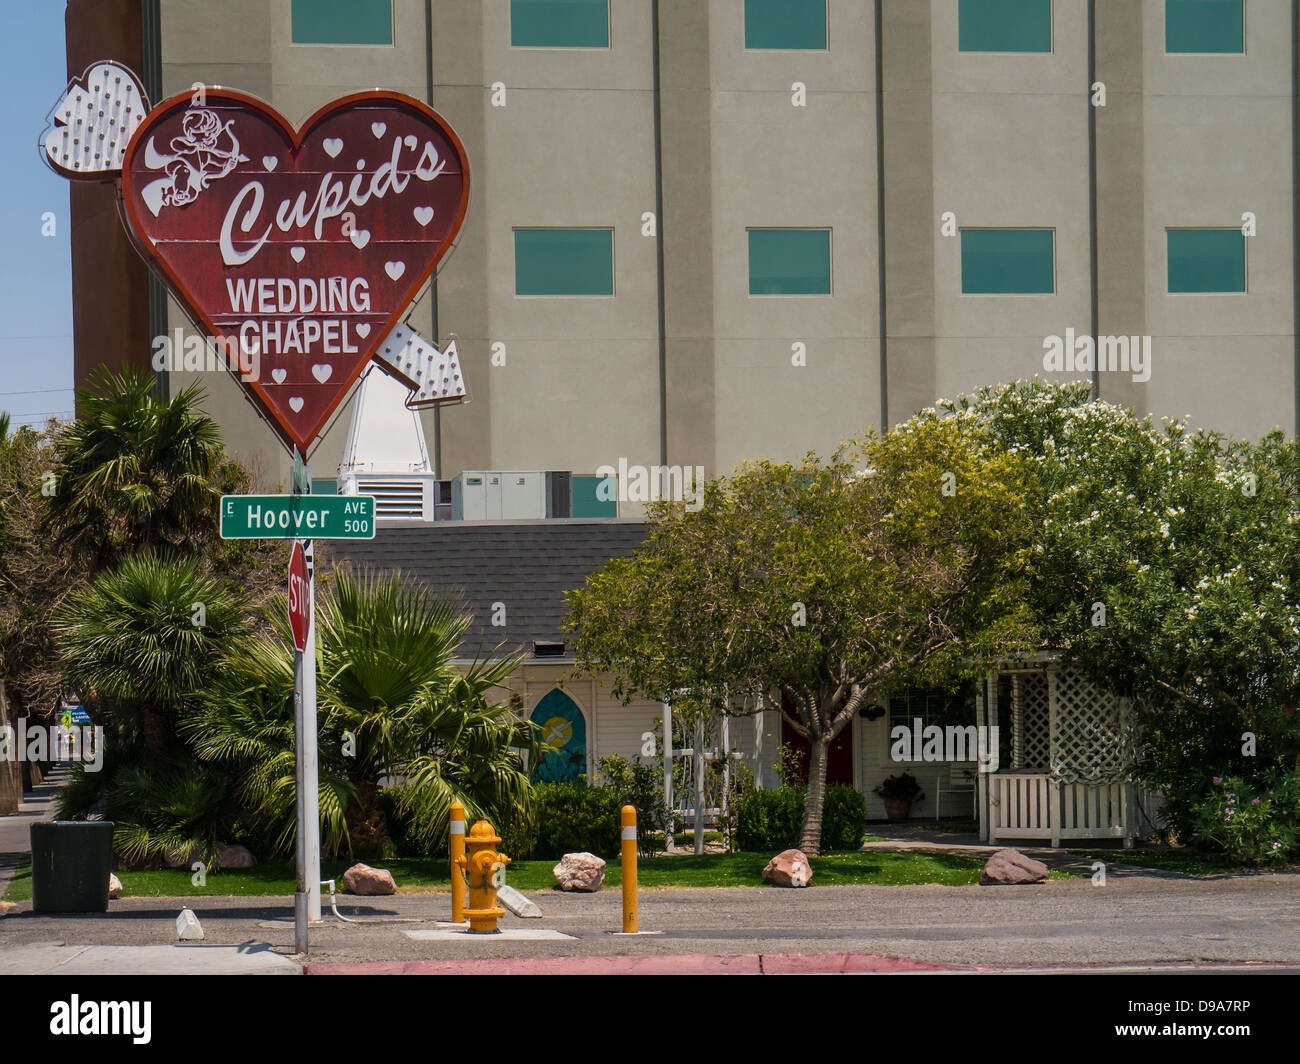 Cupid S Wedding Chapel Downtown Las Vegas Stock Photo